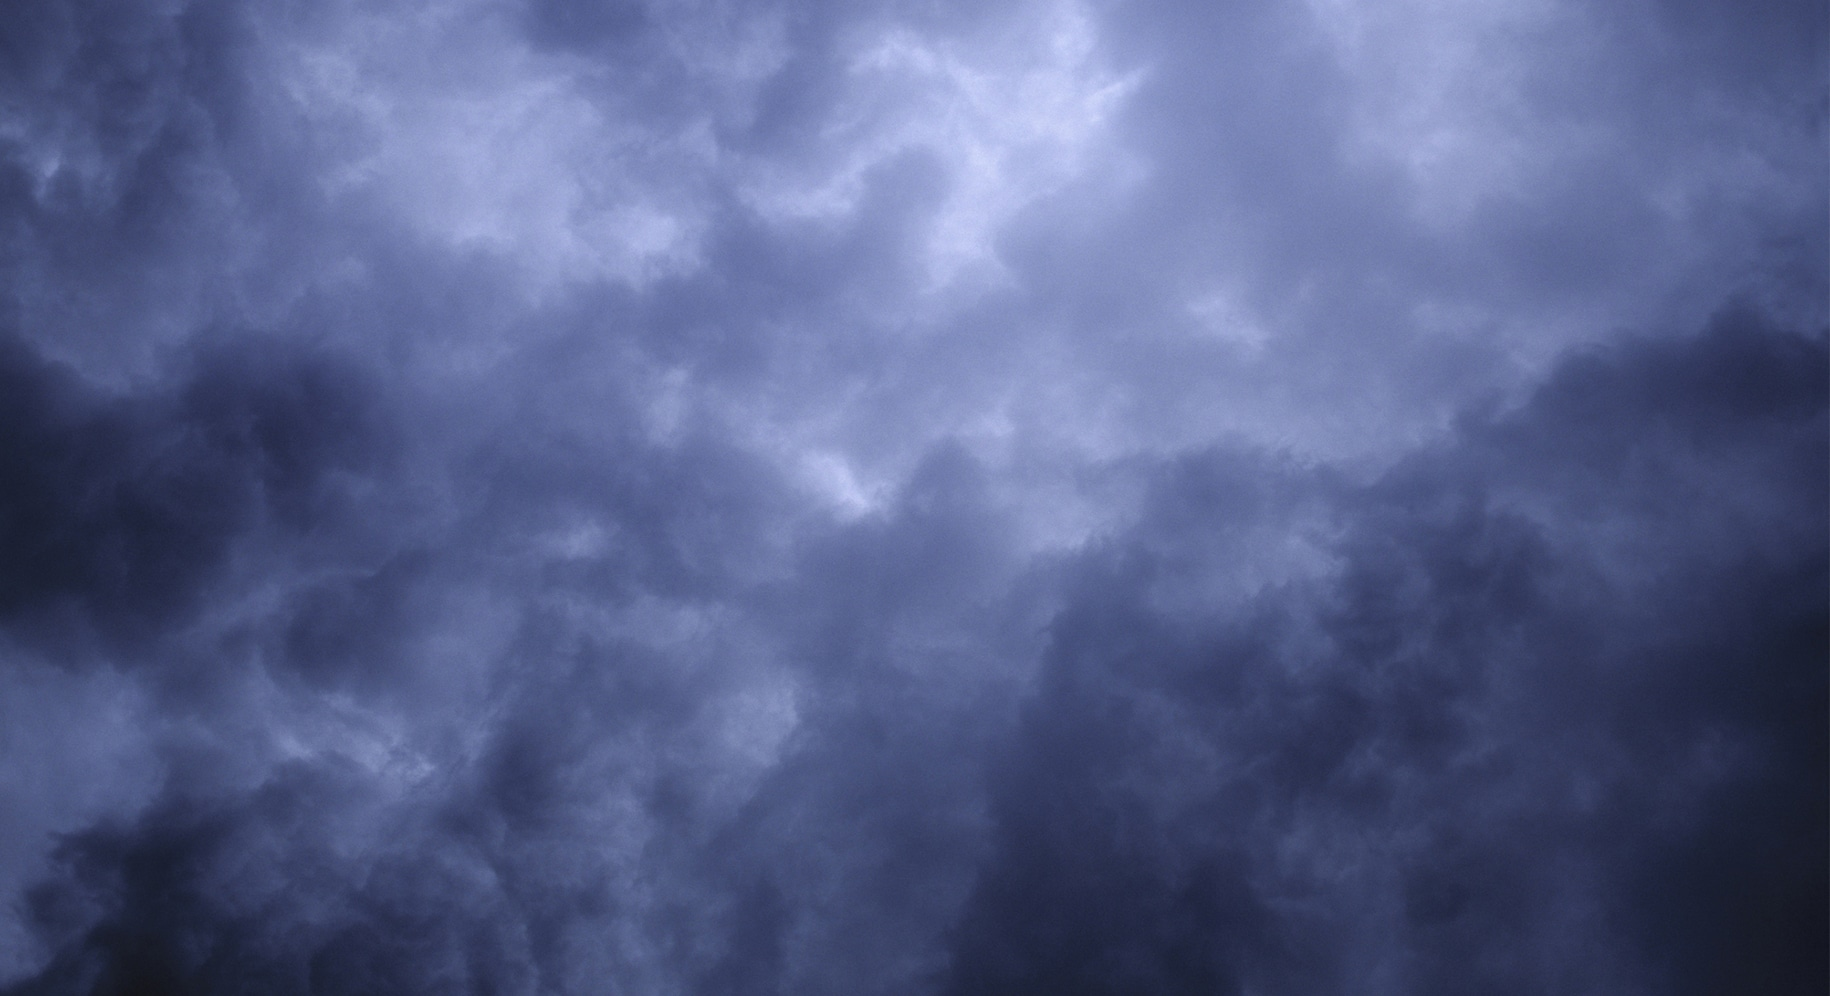 view of dark stormy clouds